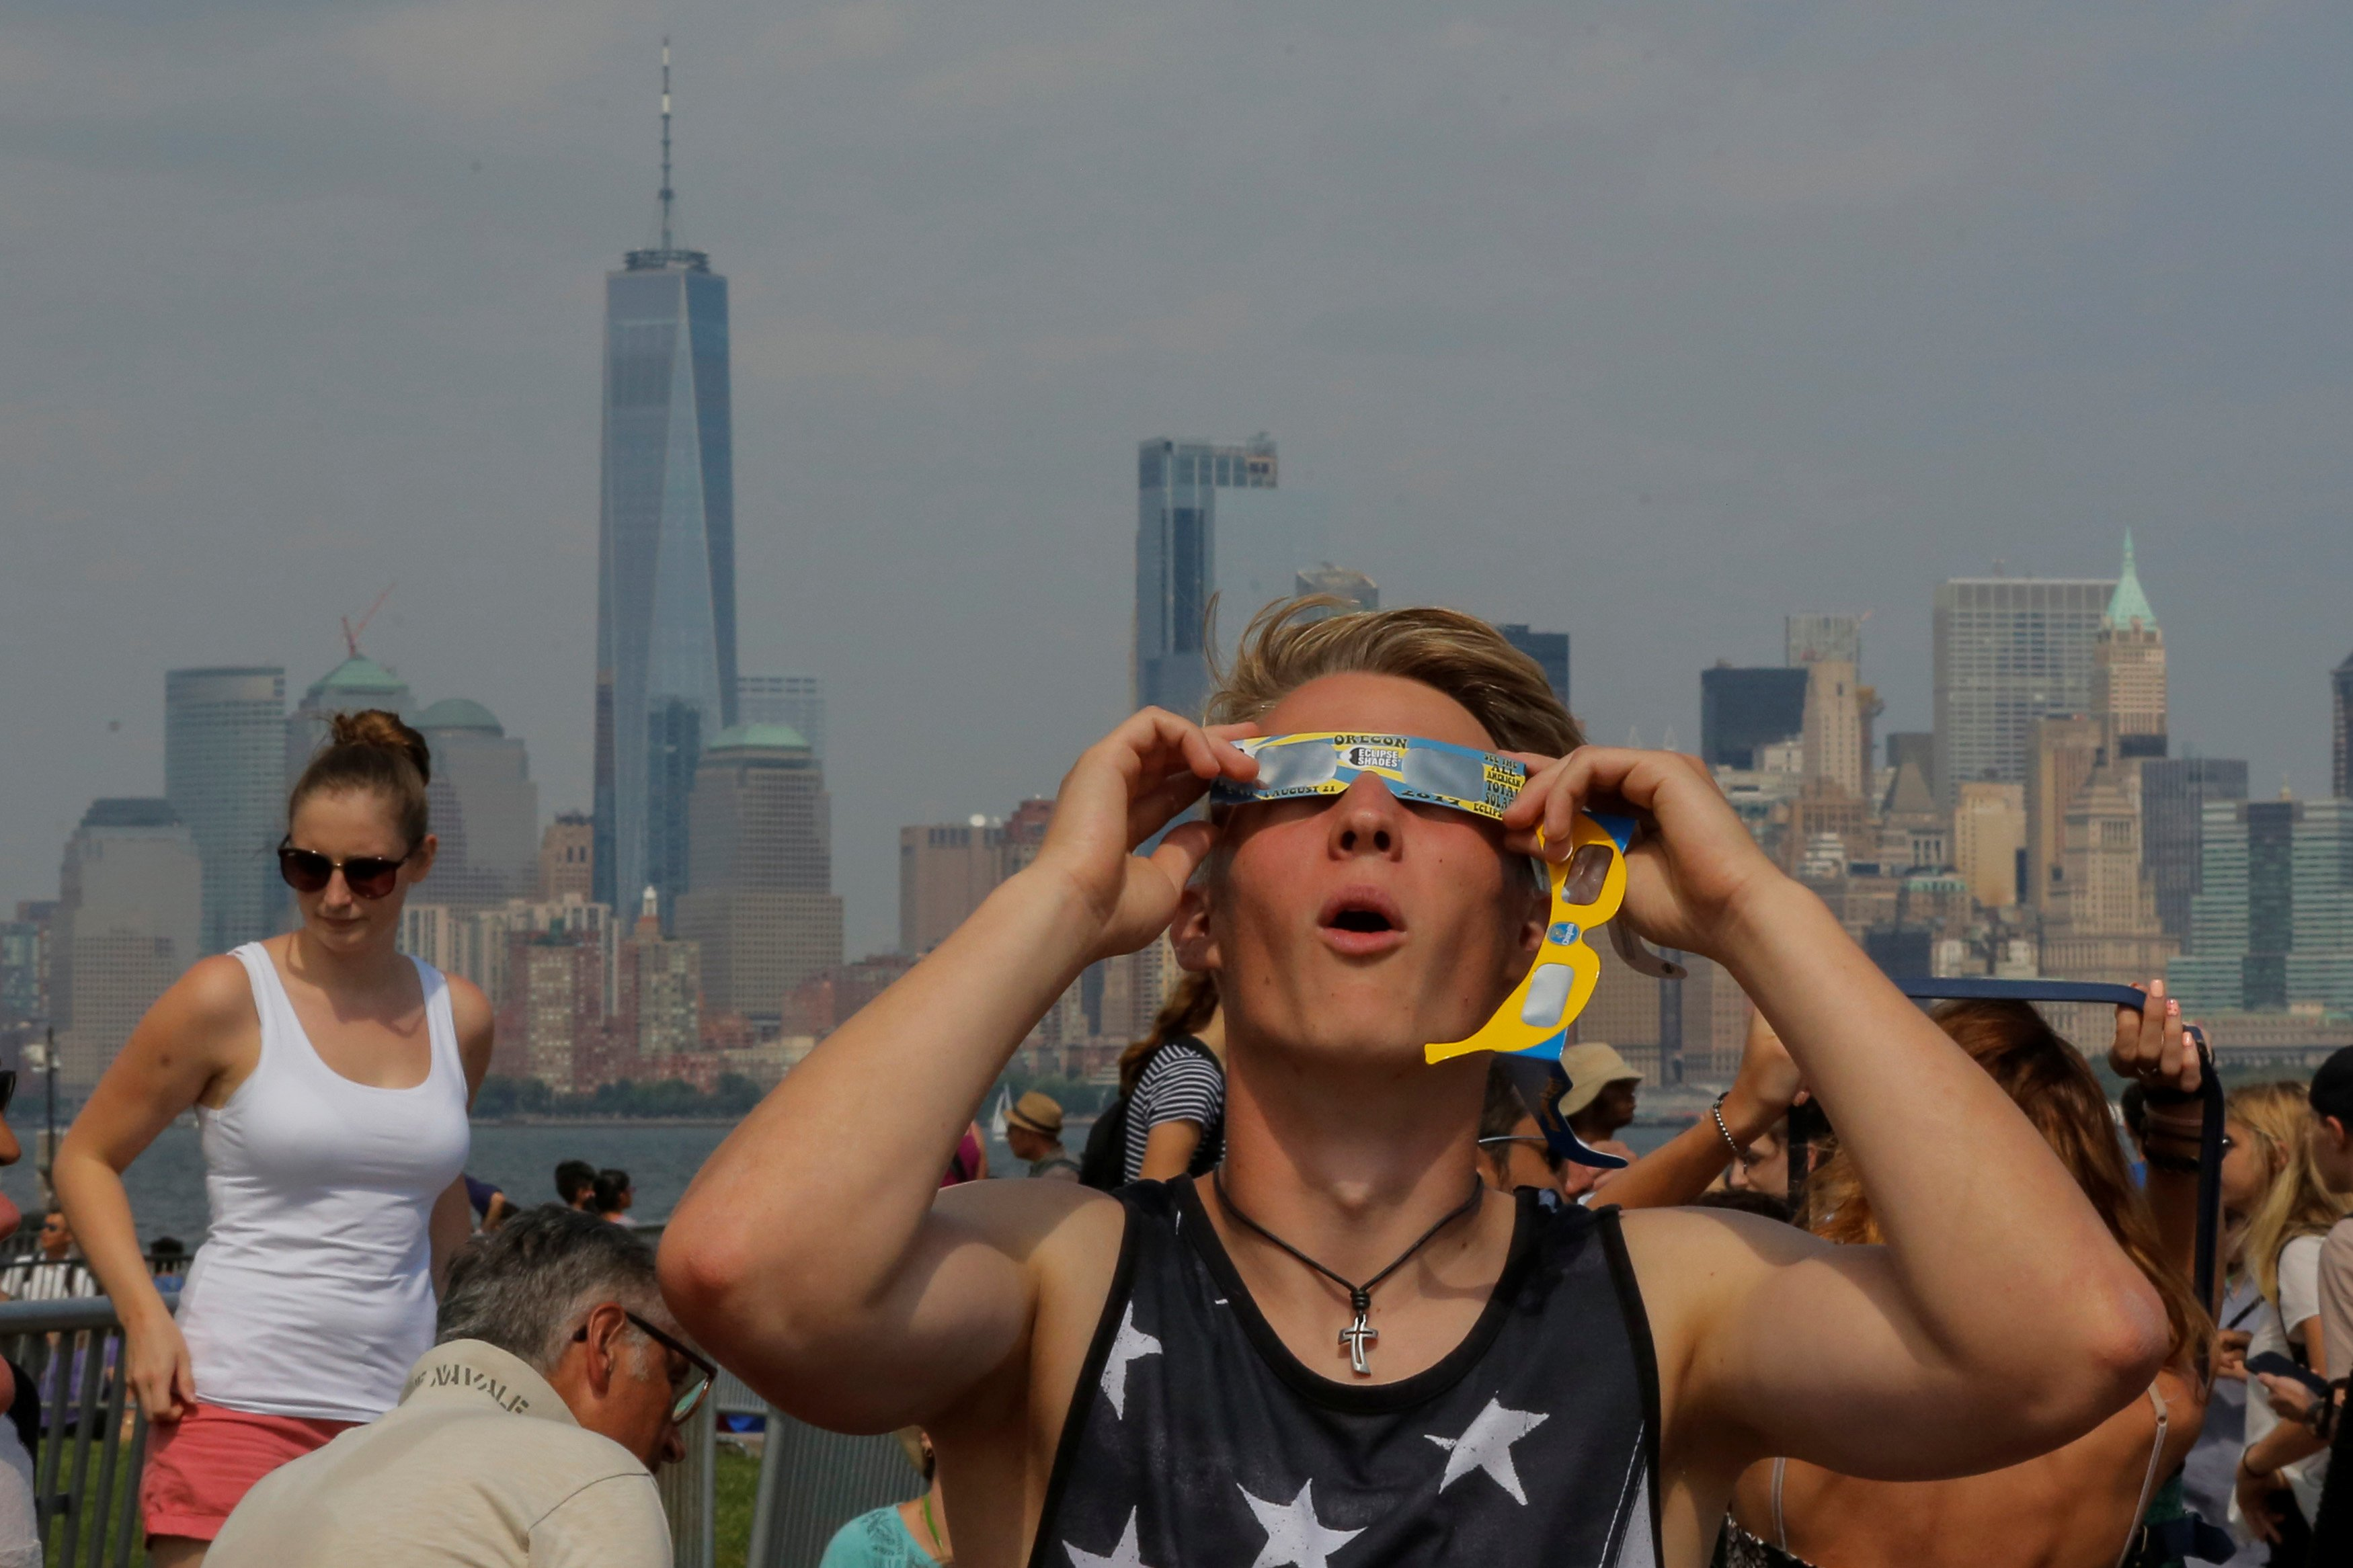 A man takes a look at the solar eclipse at Liberty State Island as the Lower Manhattan and One World Trade center are seen in the background in New York